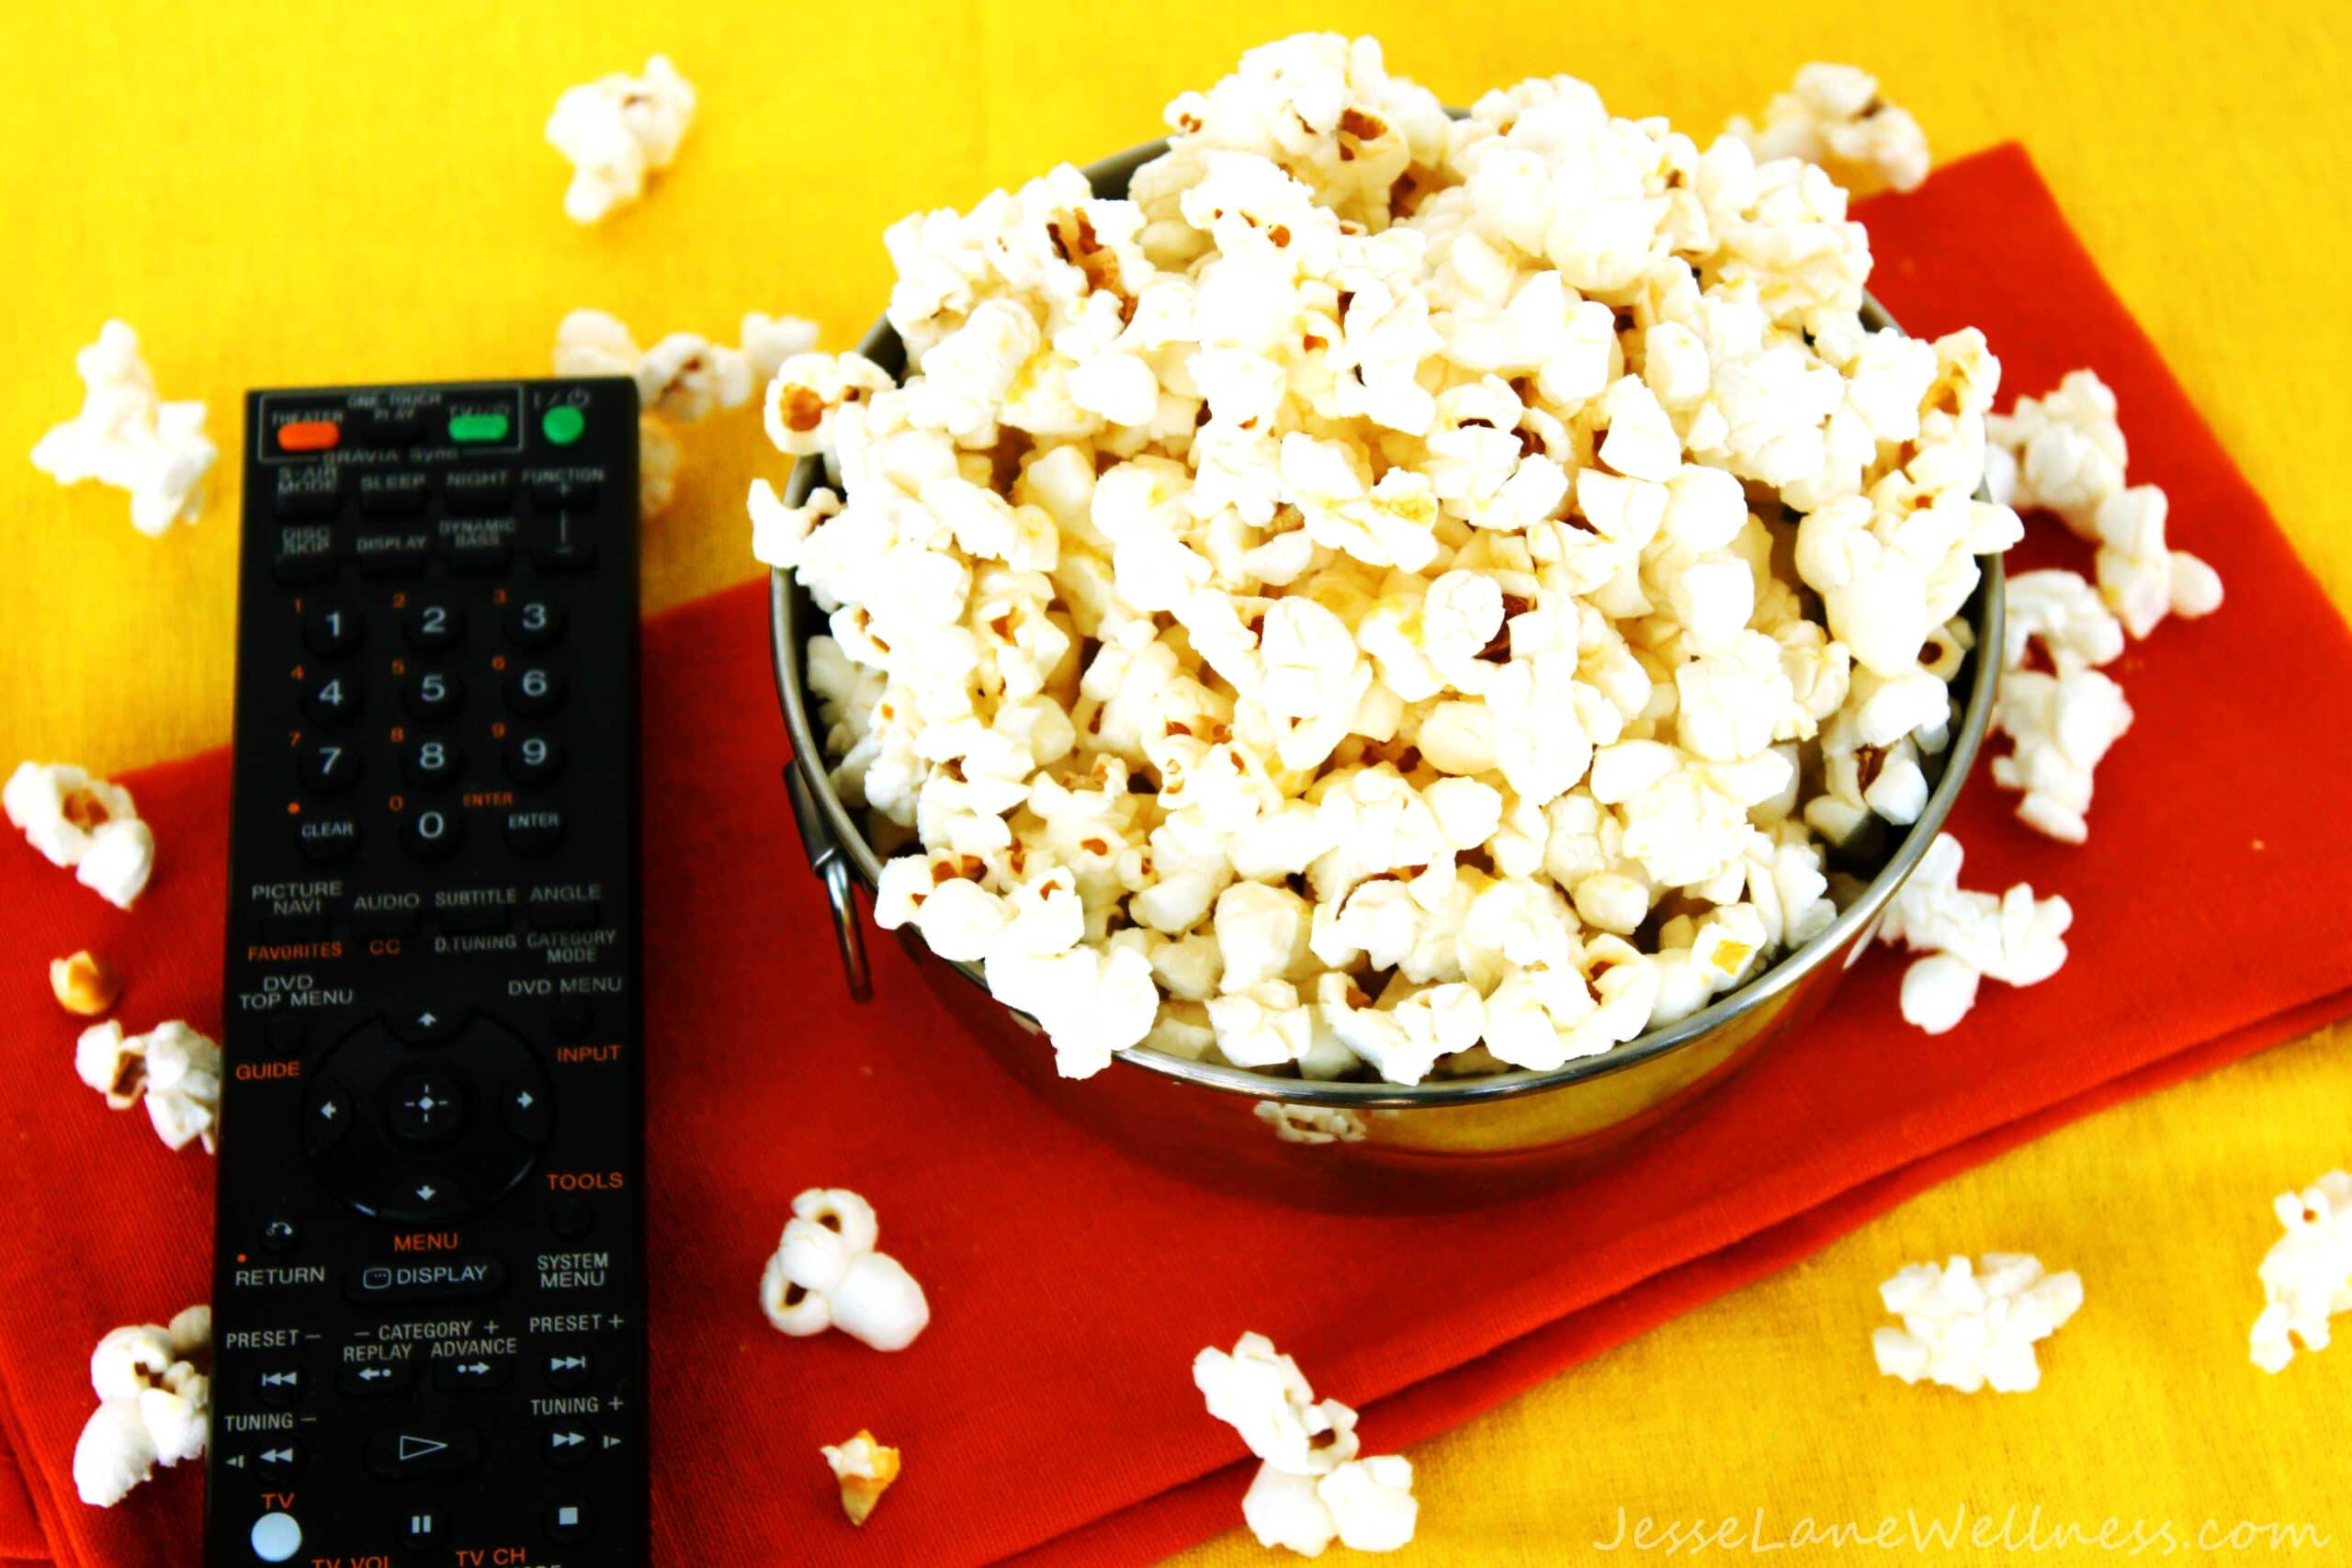 Cheesy Popcorn by @JesseLWellness #popcorn #moviepopcorn